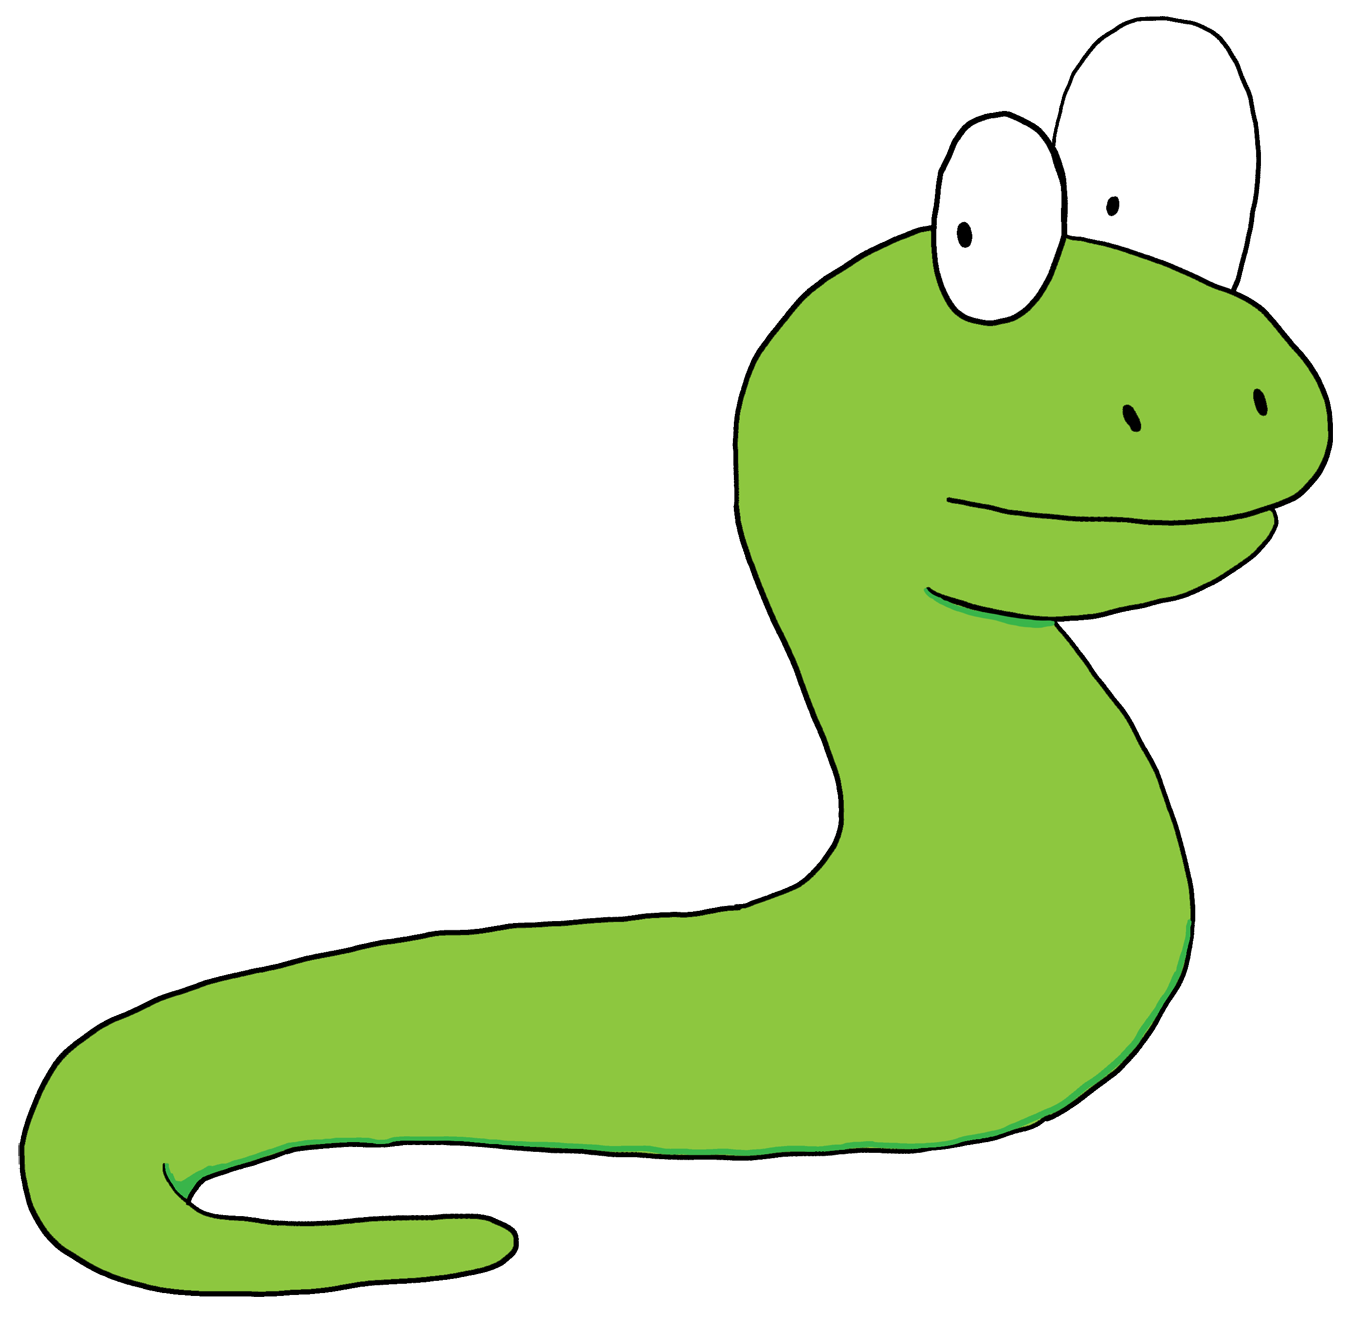 Free Animated Worm Cliparts, Download Free Clip Art, Free.